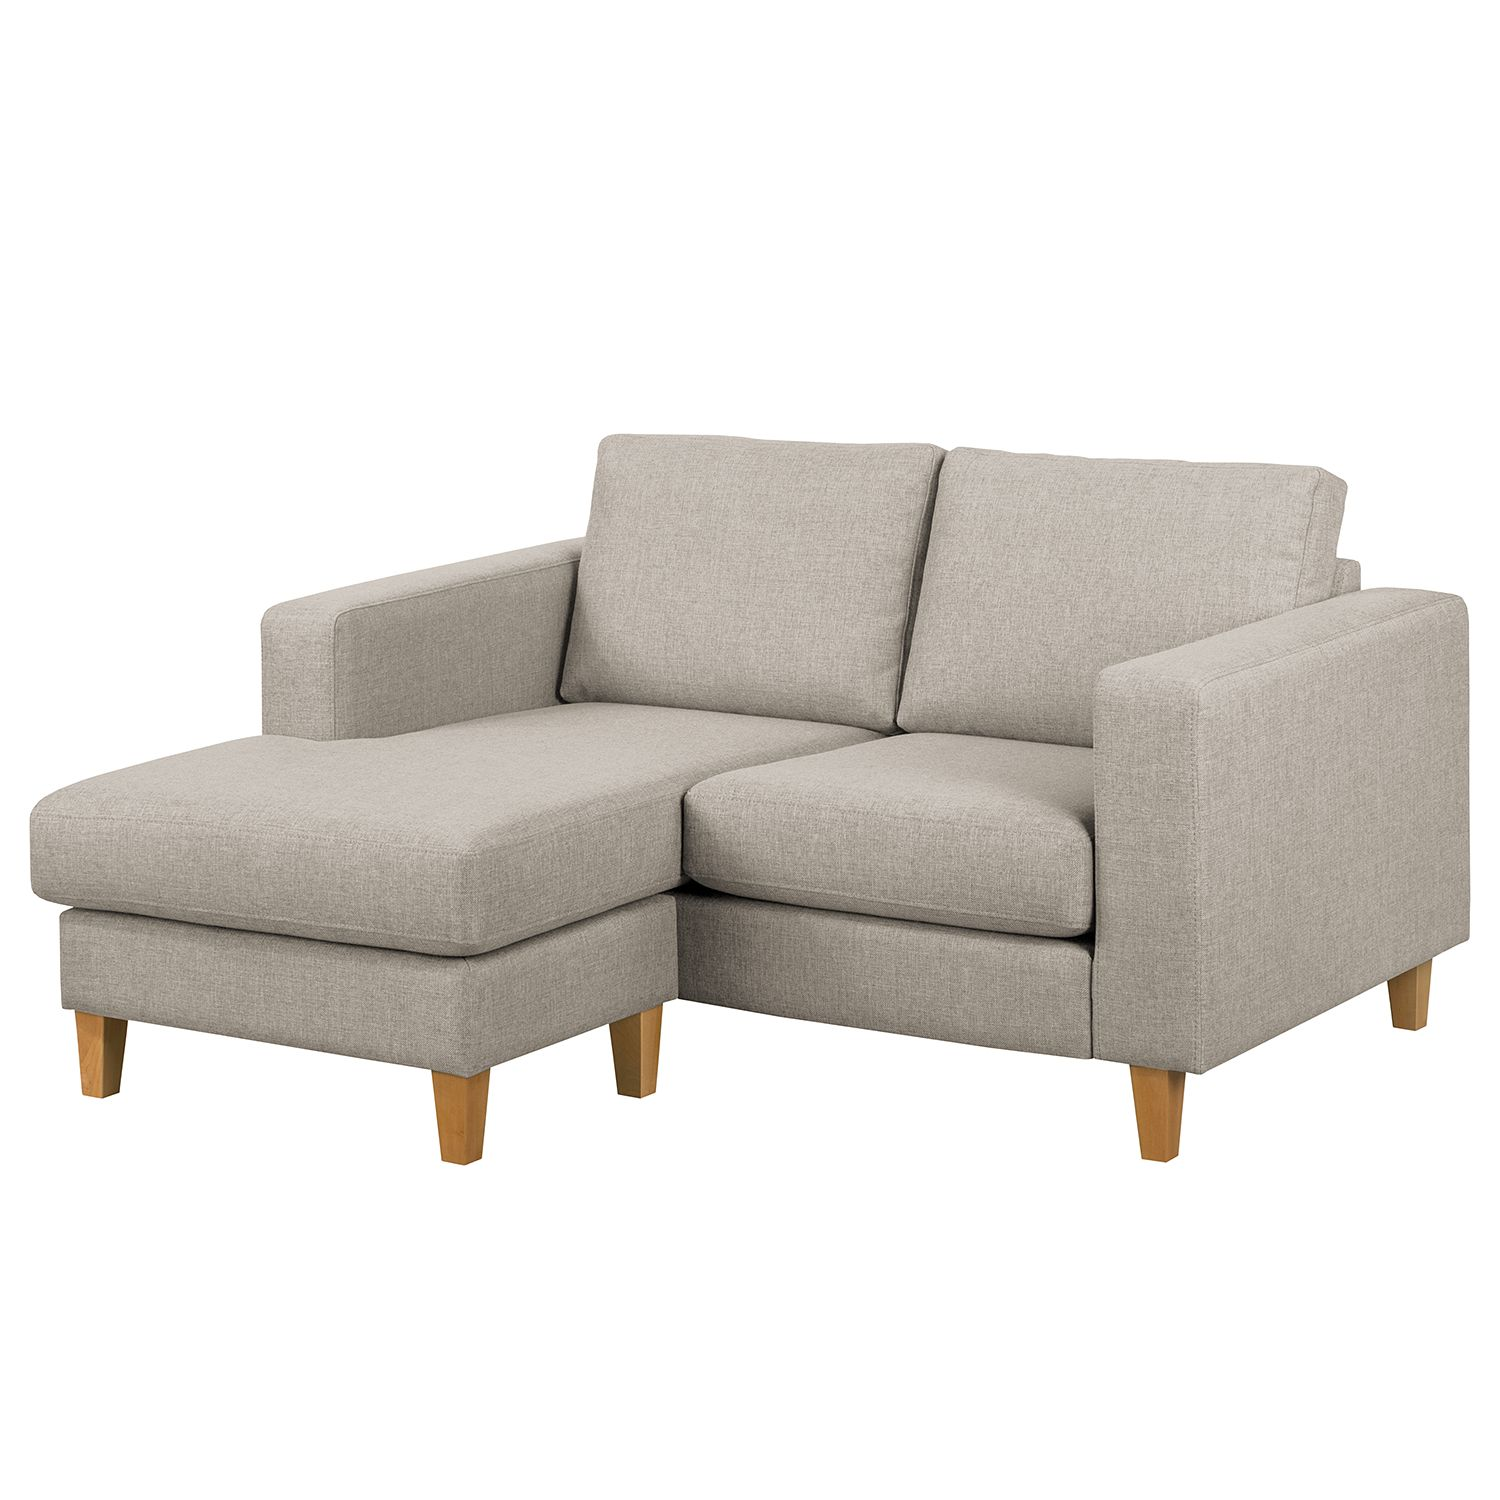 Canap d angle maison iii tissu m ridienne longue for Canape 99 euros